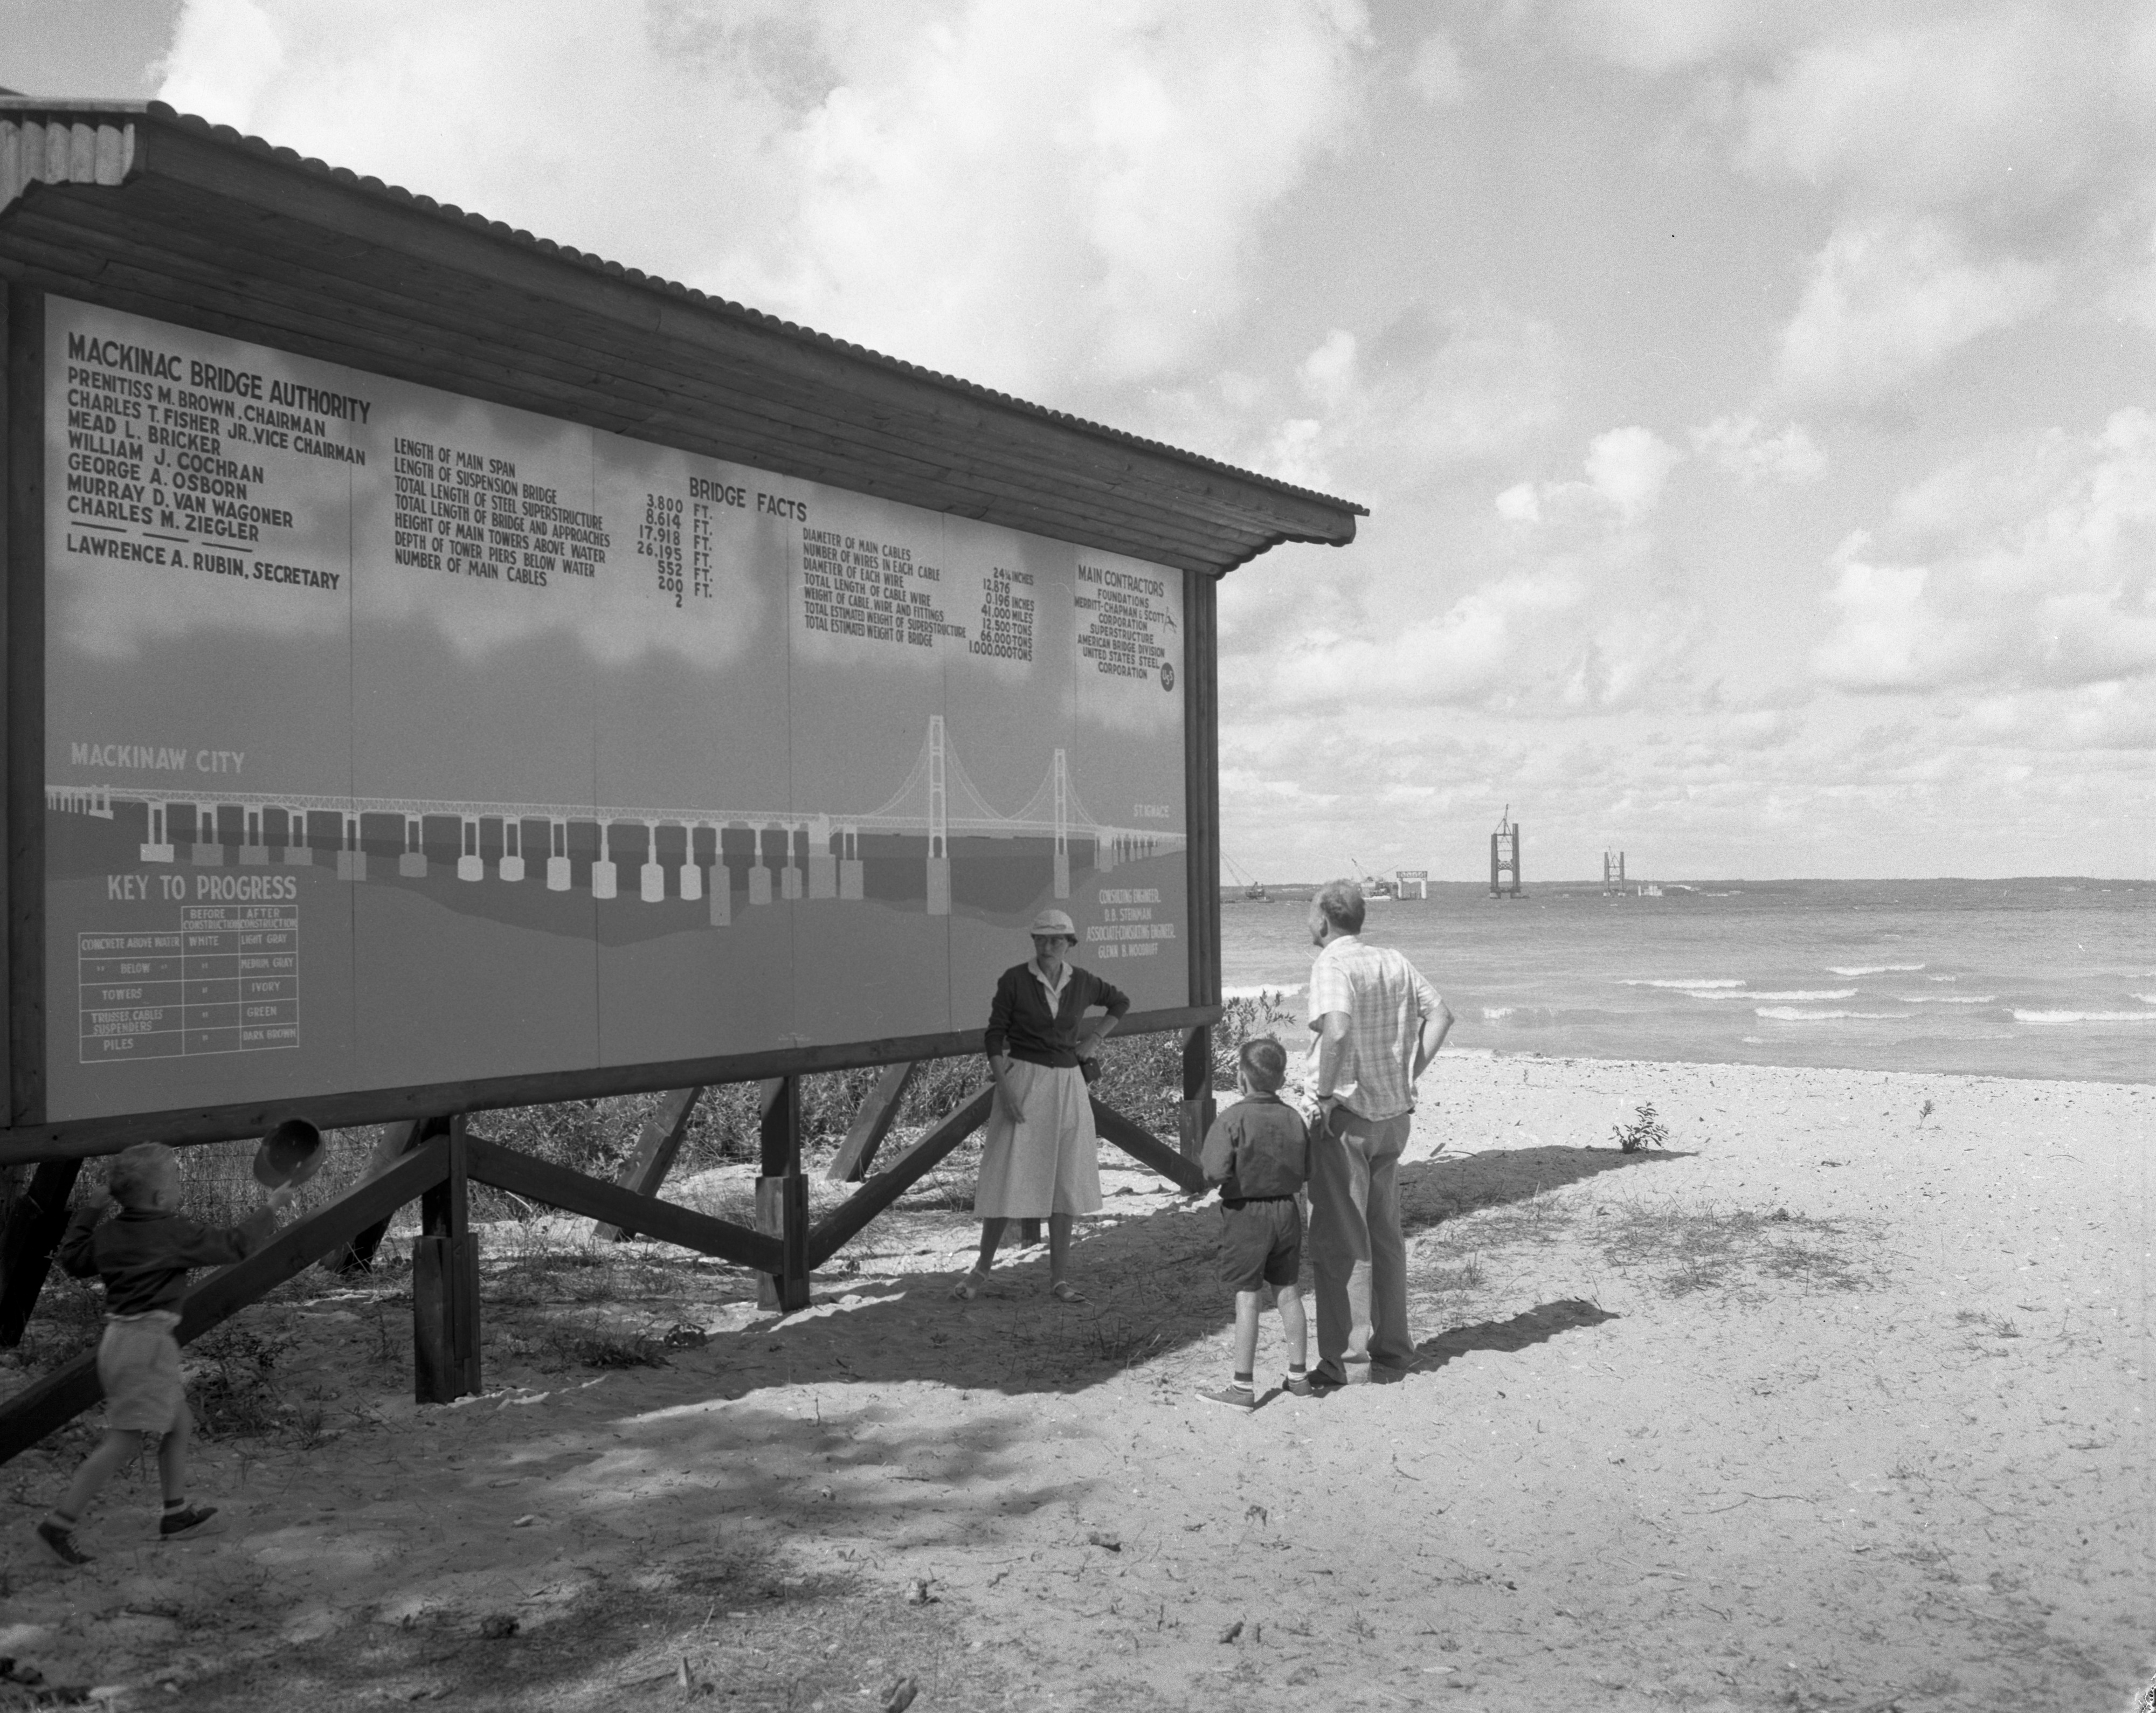 View of work on the Mackinaw Bridge, September 1955 image